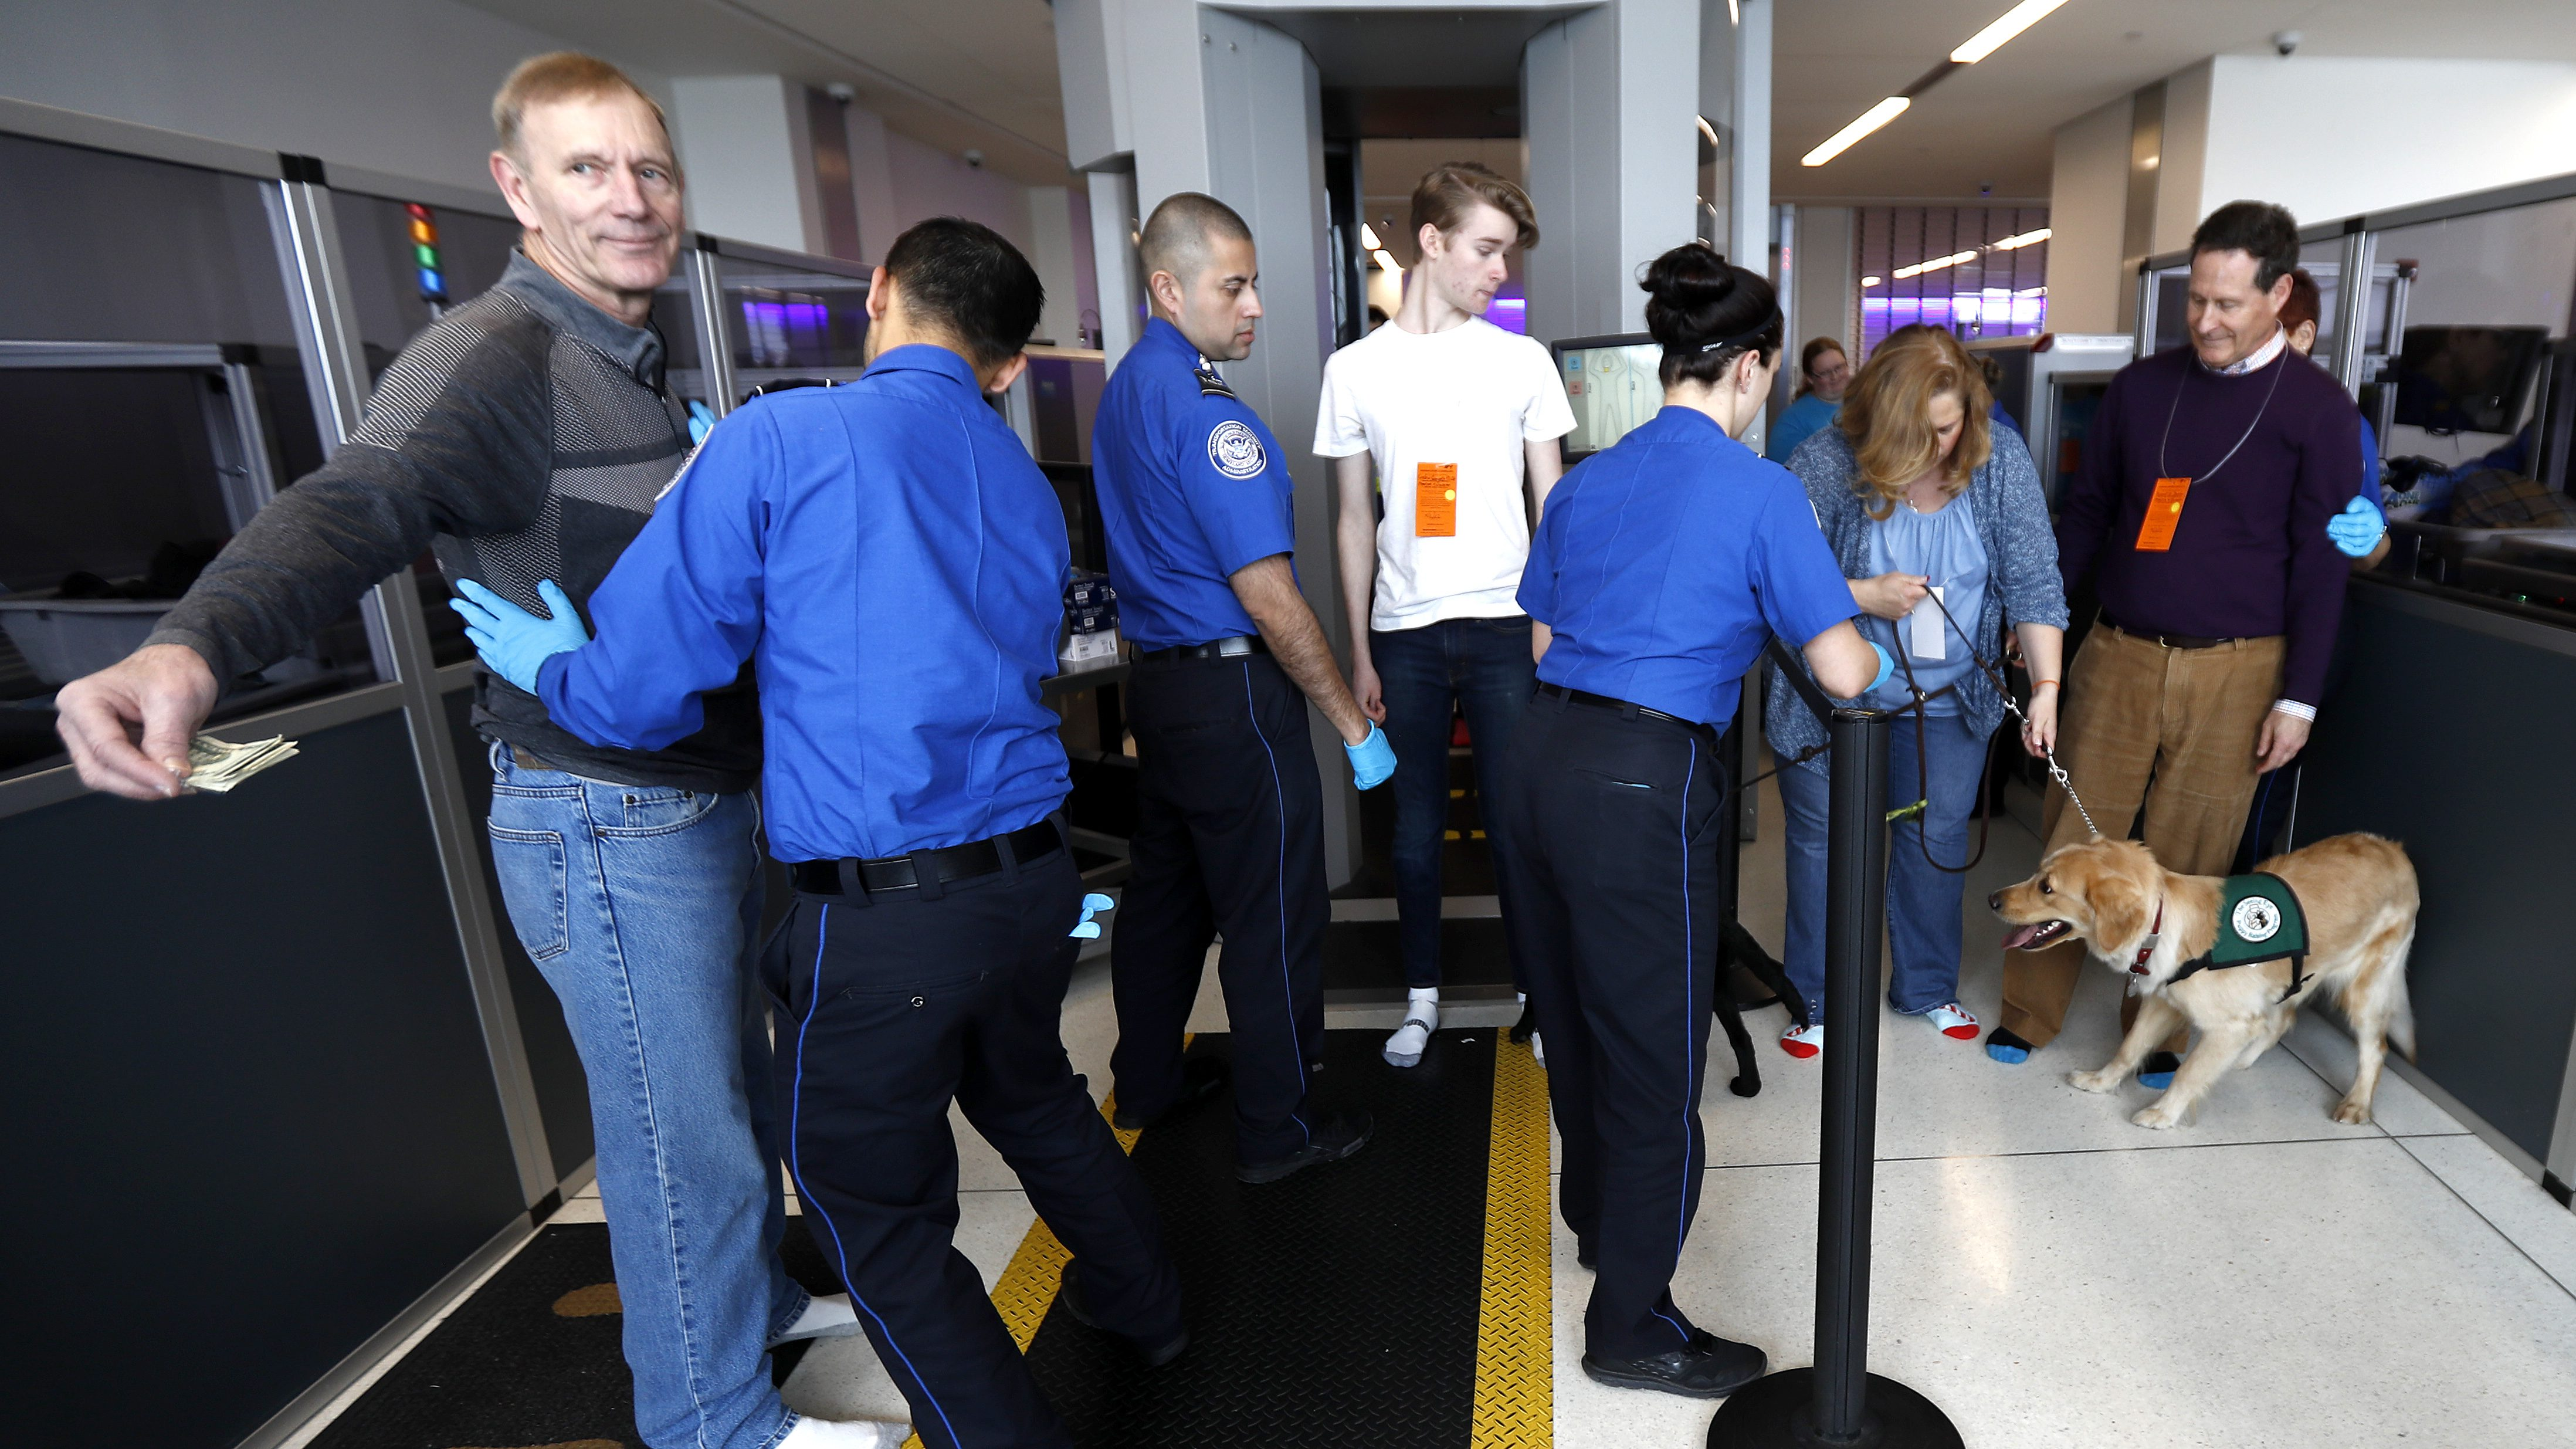 A traveler, left, is padded by a TSA agent as trainers, top right, lead their service dogs through the security area at Newark Liberty International Airport while taking part of a training exercise, Saturday, April 1, 2017, in Newark, N.J. Trainers took dogs through security check and onto a plane as part of the exercise put on by the Seeing Eye puppy program. (AP Photo/Julio Cortez)